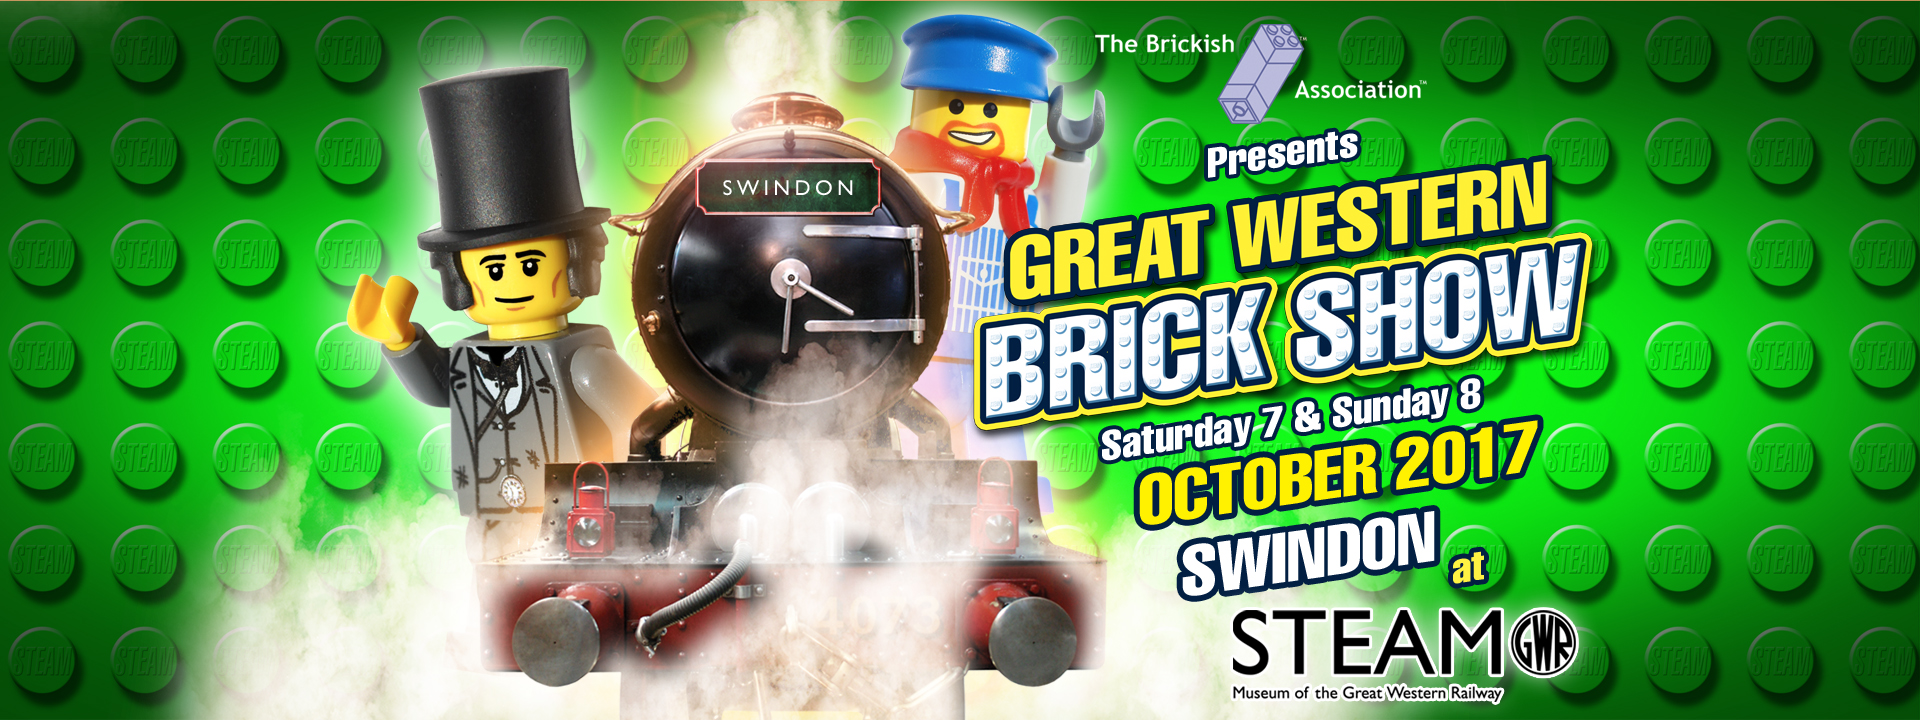 Great Western Brick Show 2017